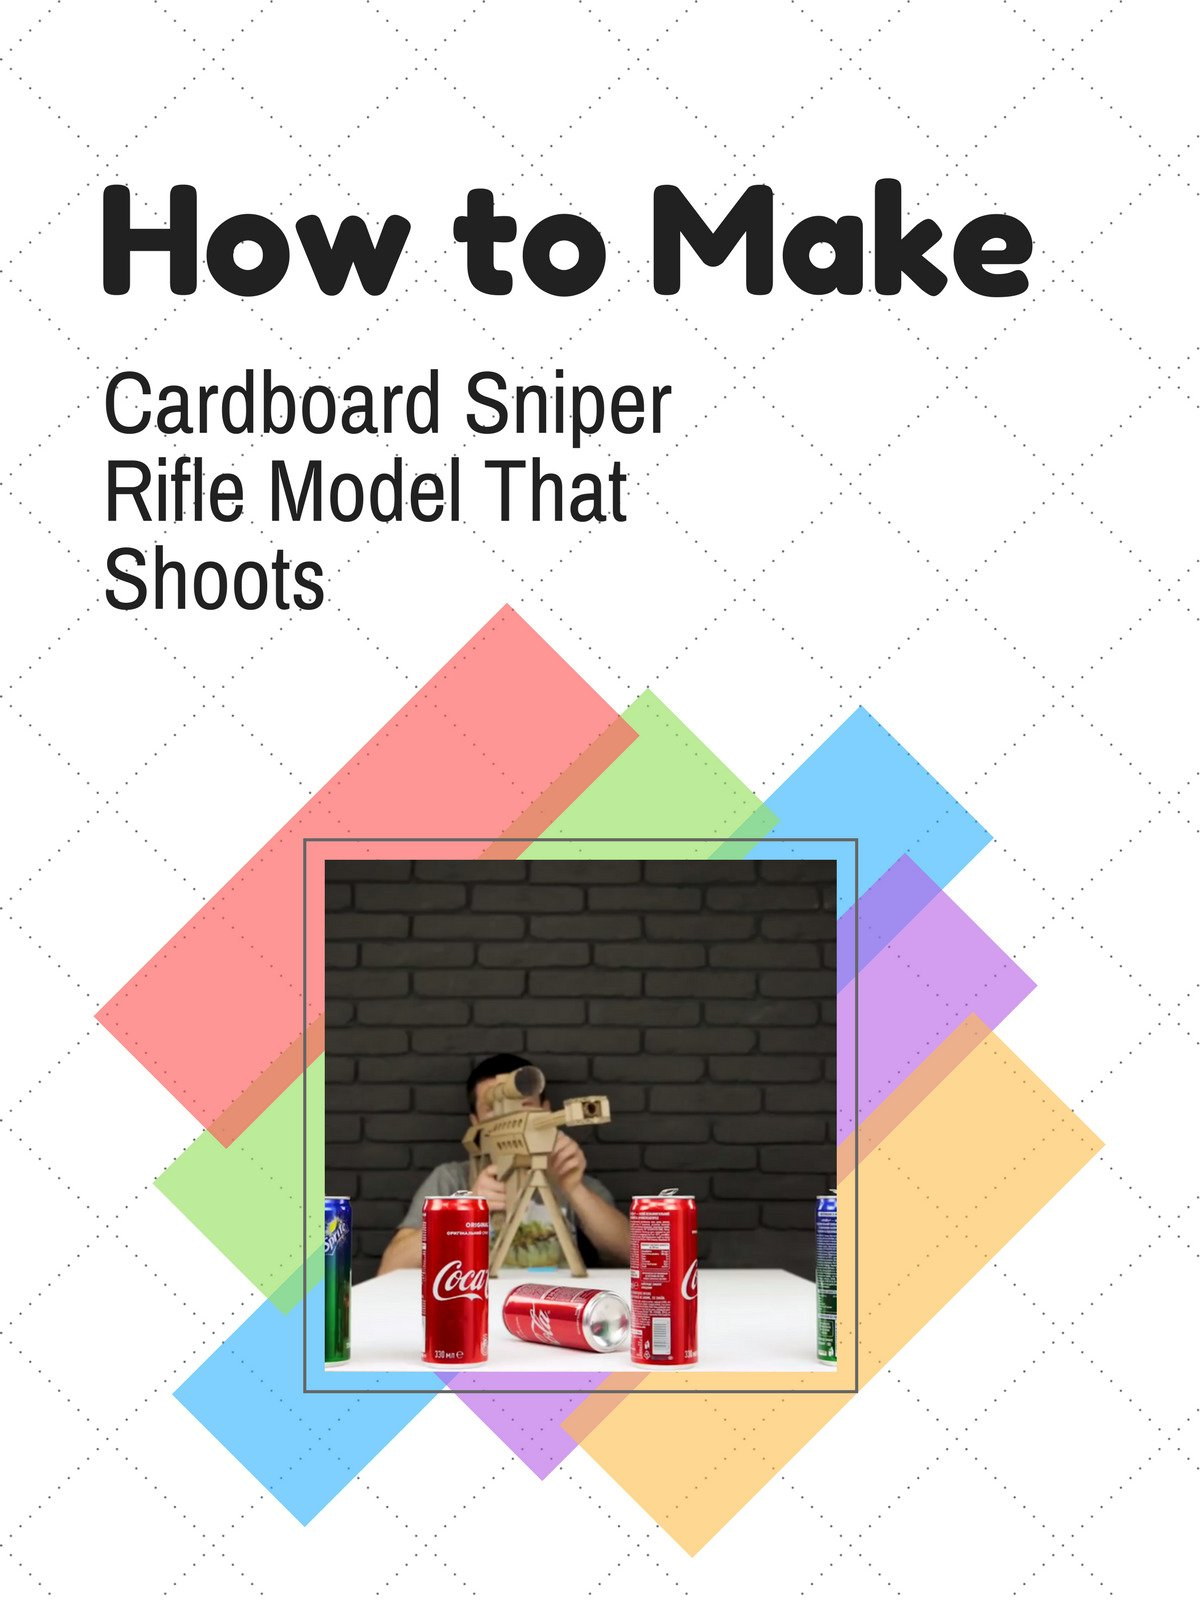 How to Make Cardboard Sniper Rifle Model That Shoots